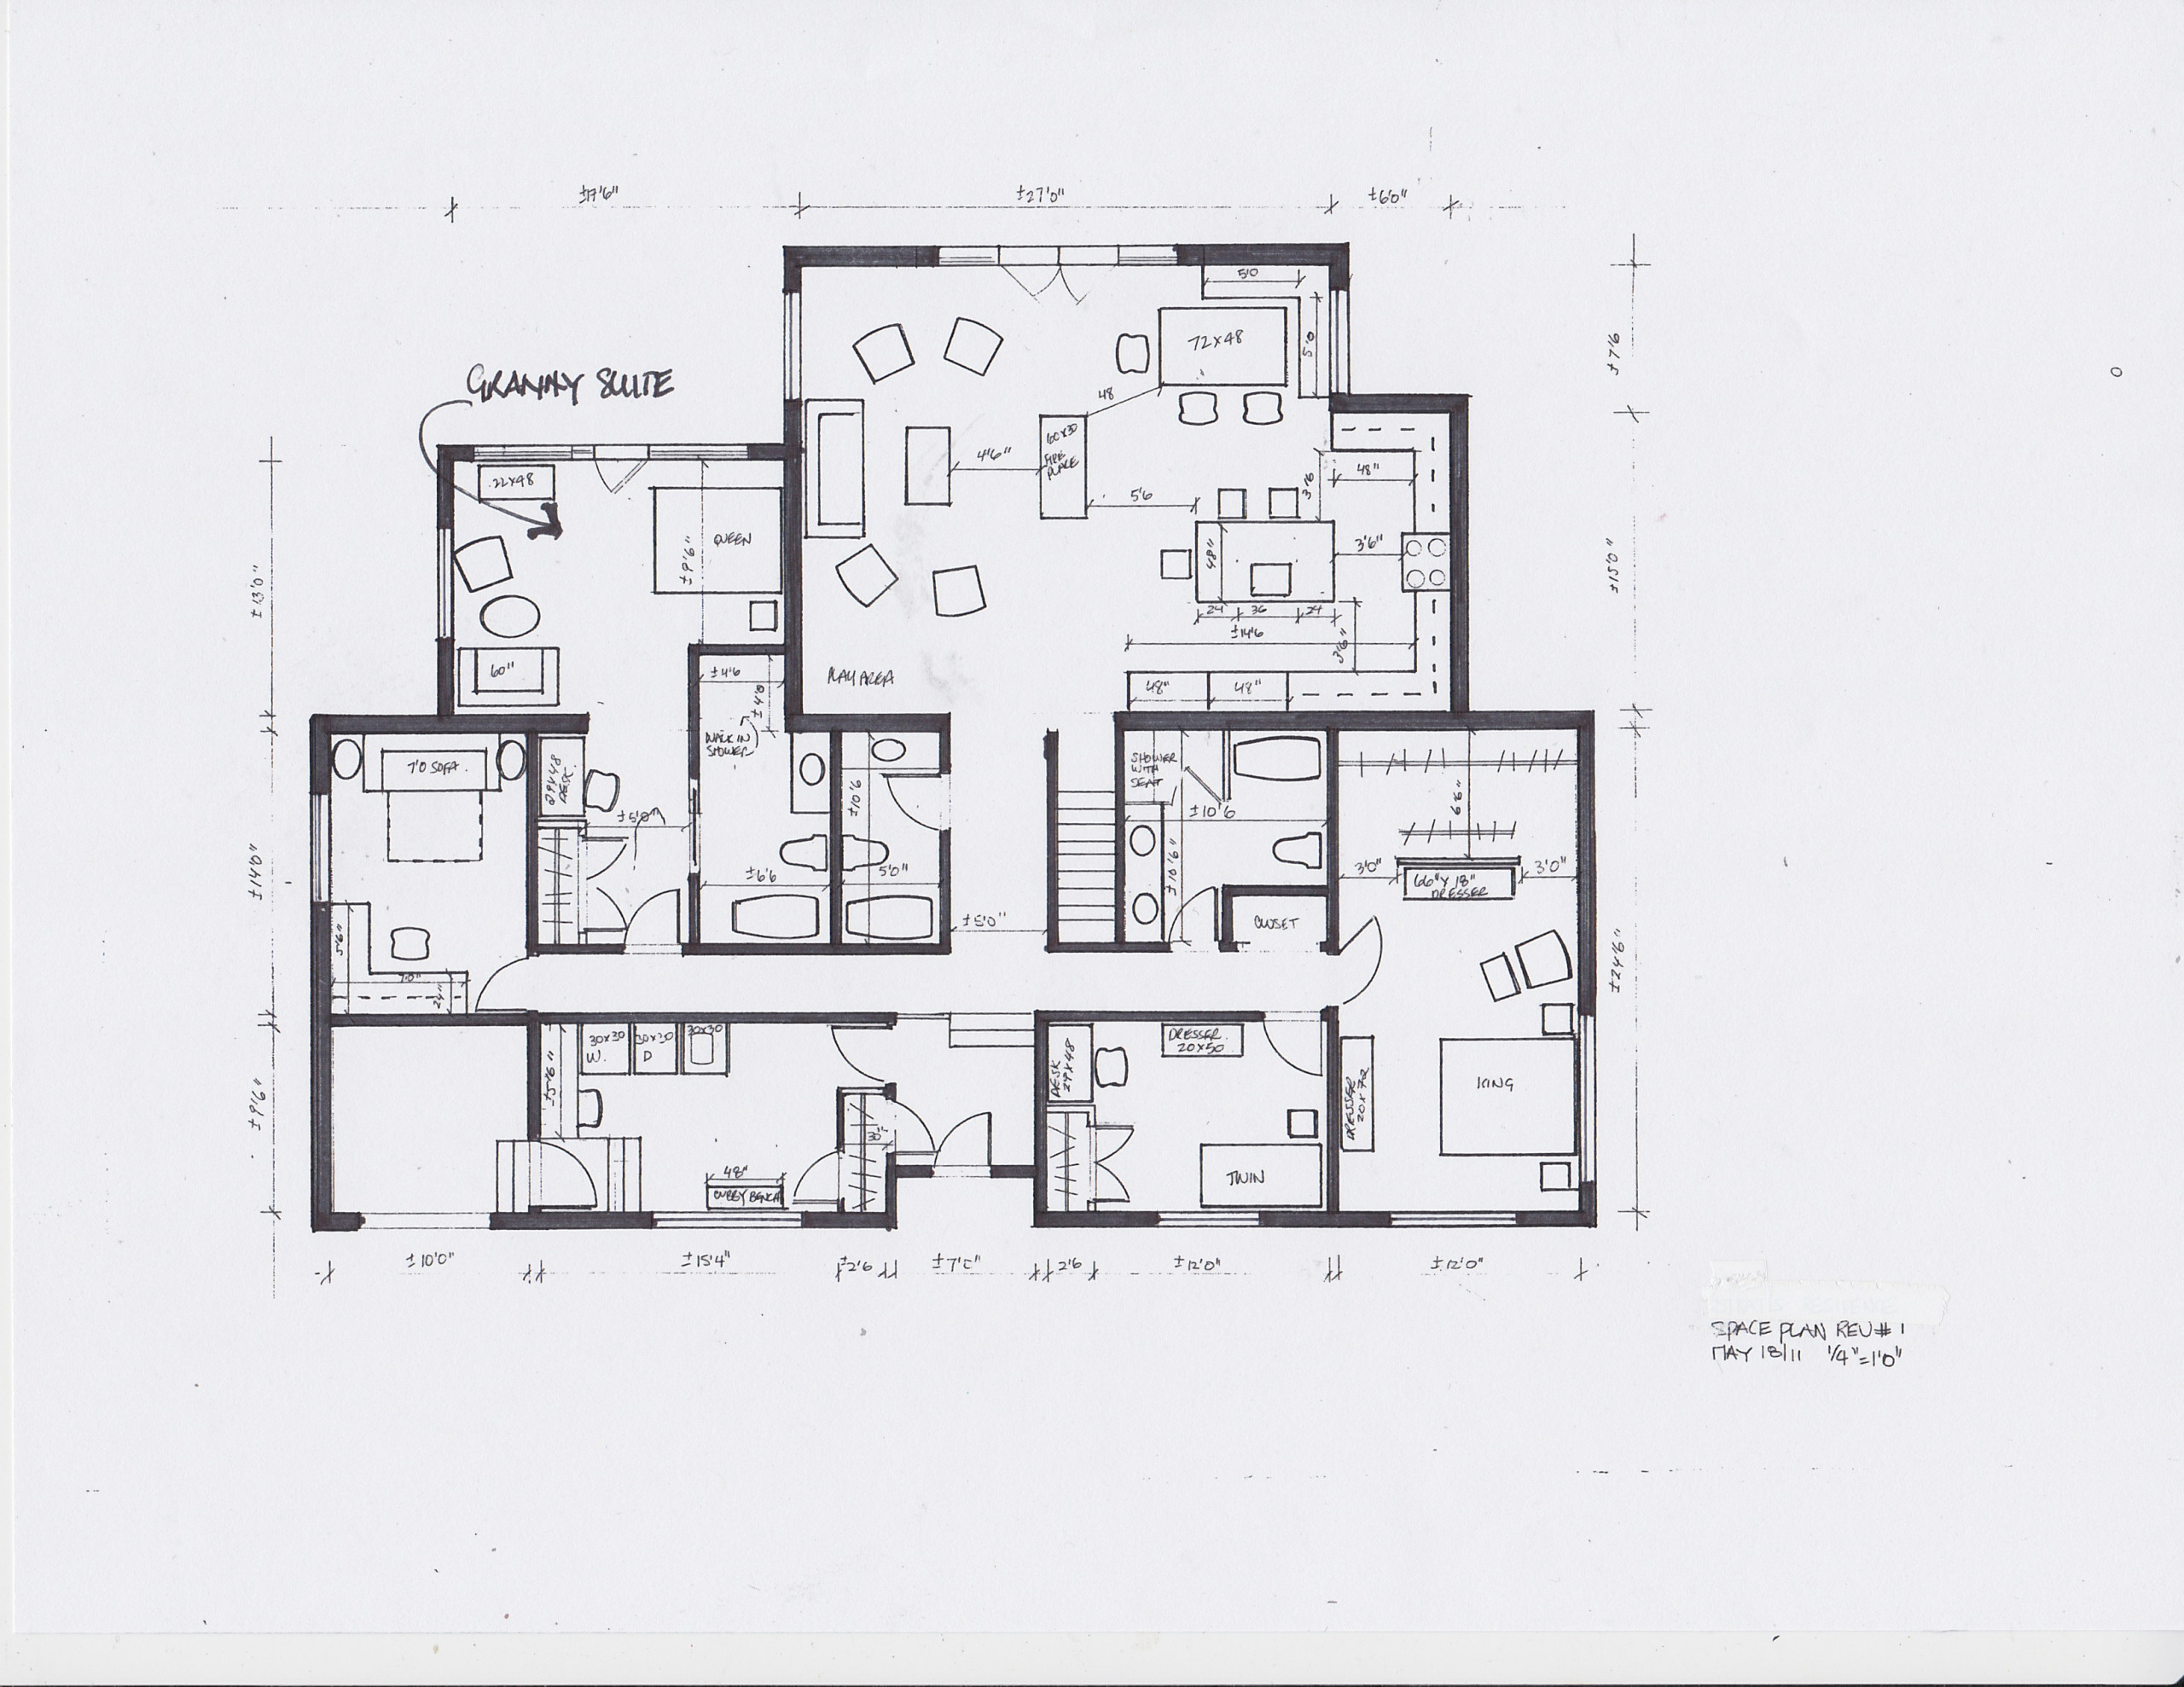 living in place space plans- granny suite